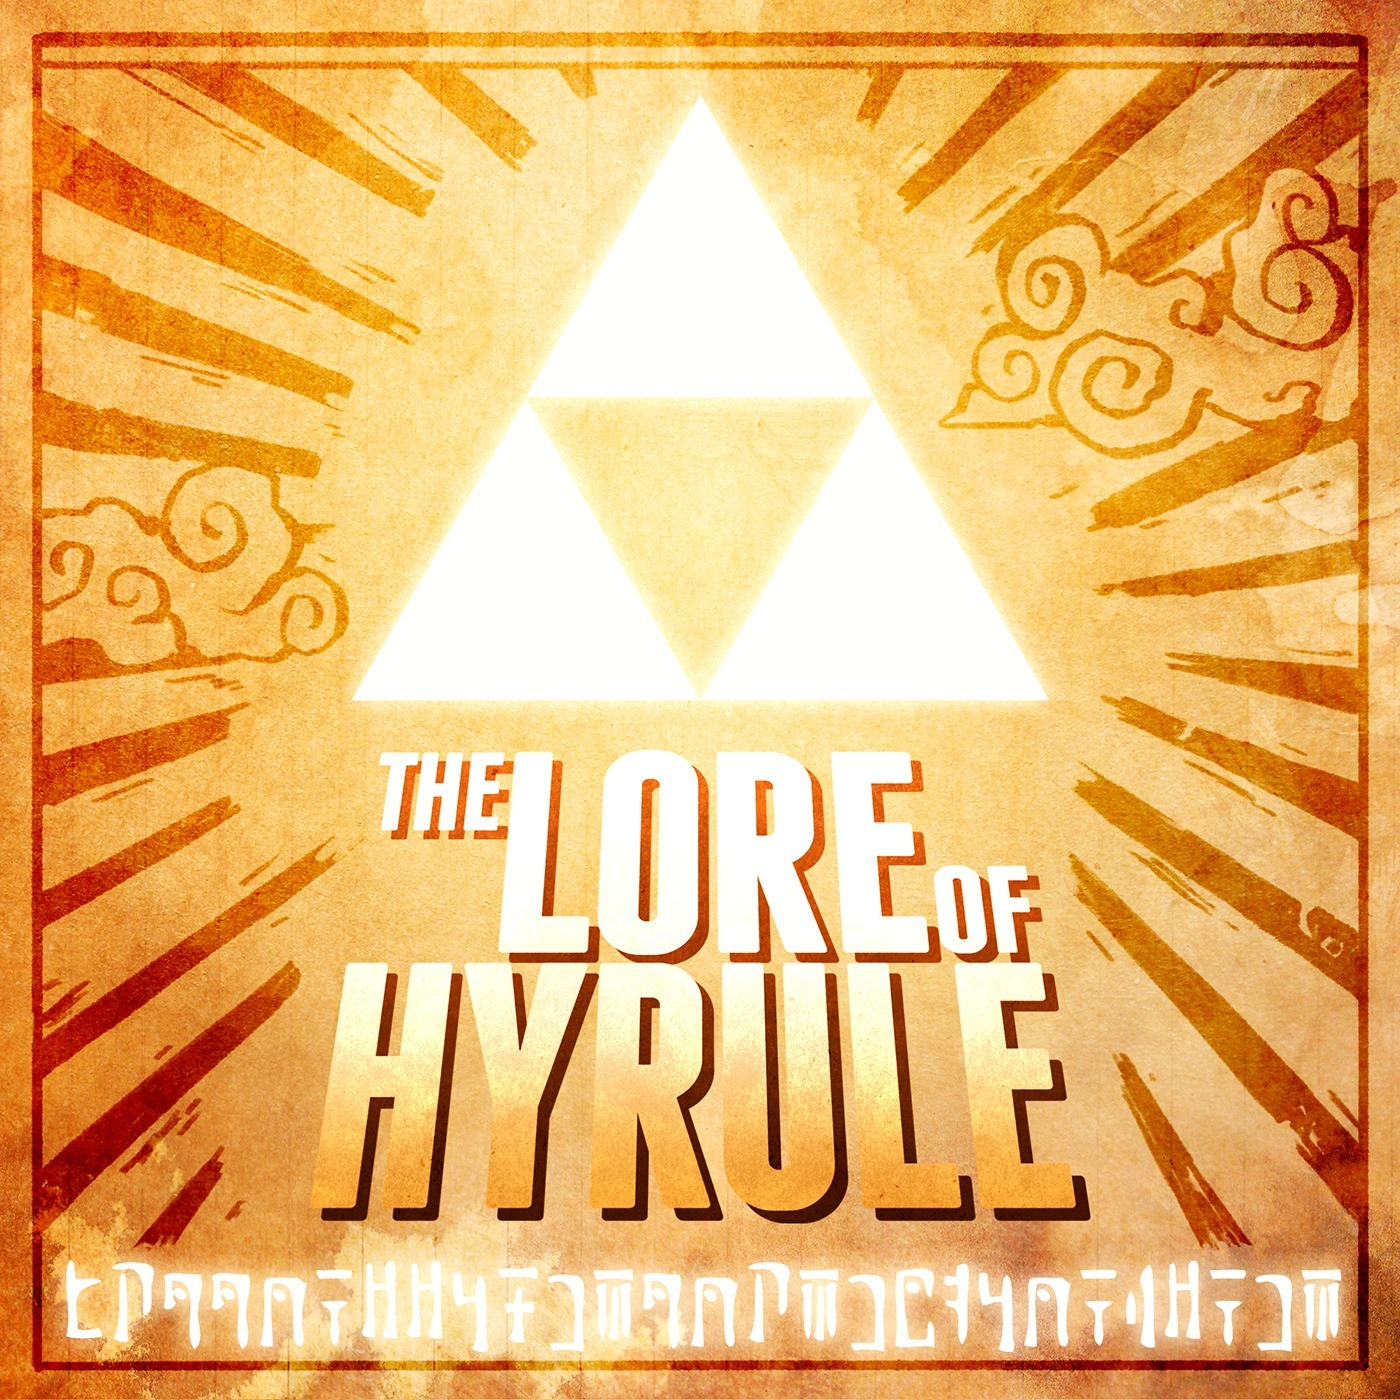 The Lore of Hyrule